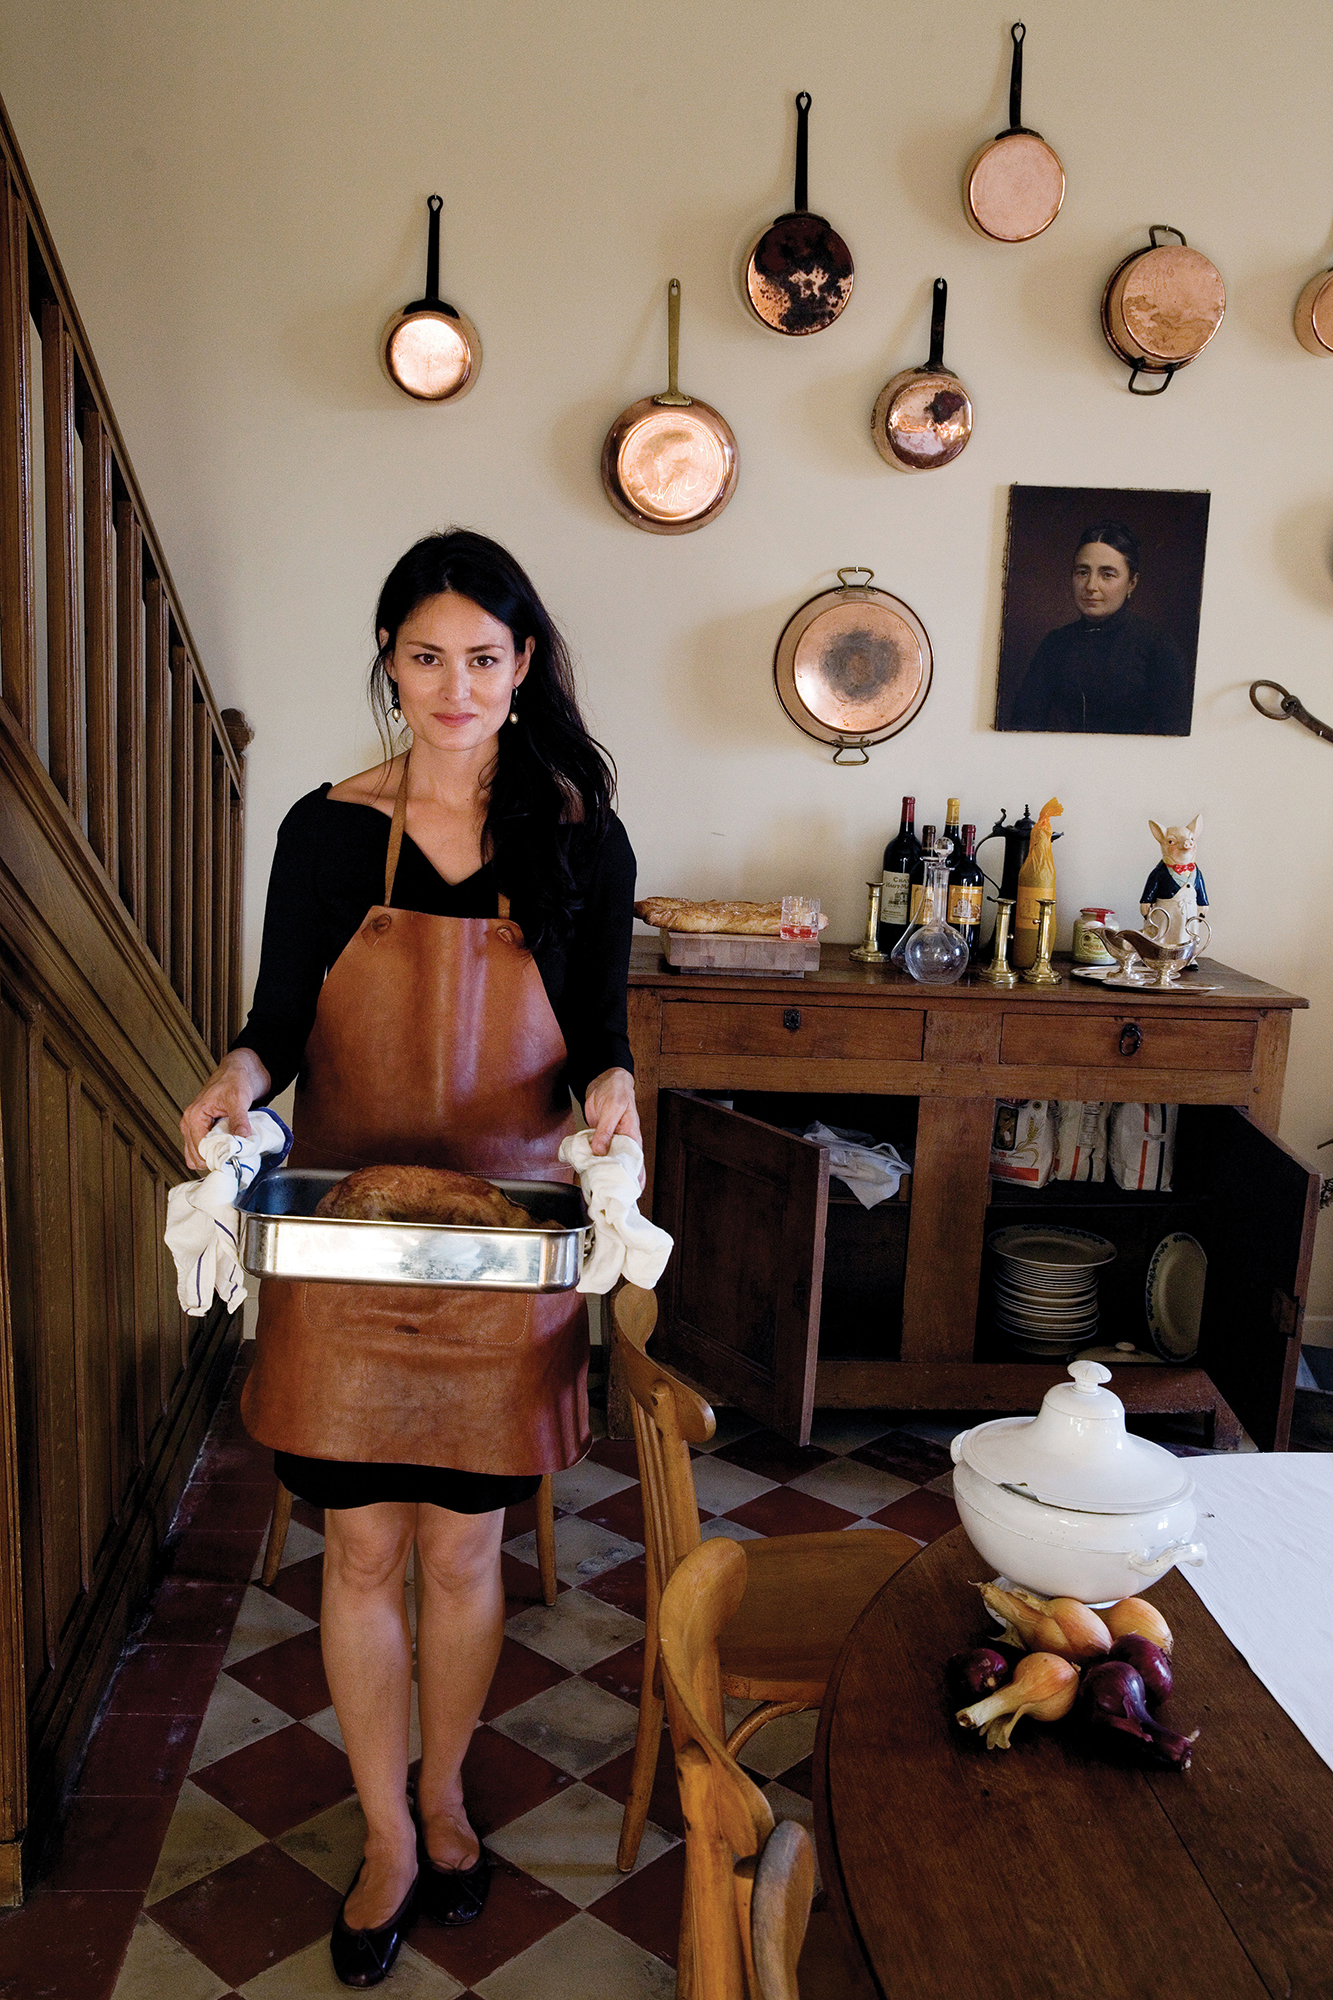 kitchen pictures for walls stonewall dark chocolate sea salt caramel sauce mimi thorisson's dream in her french chateau - vogue